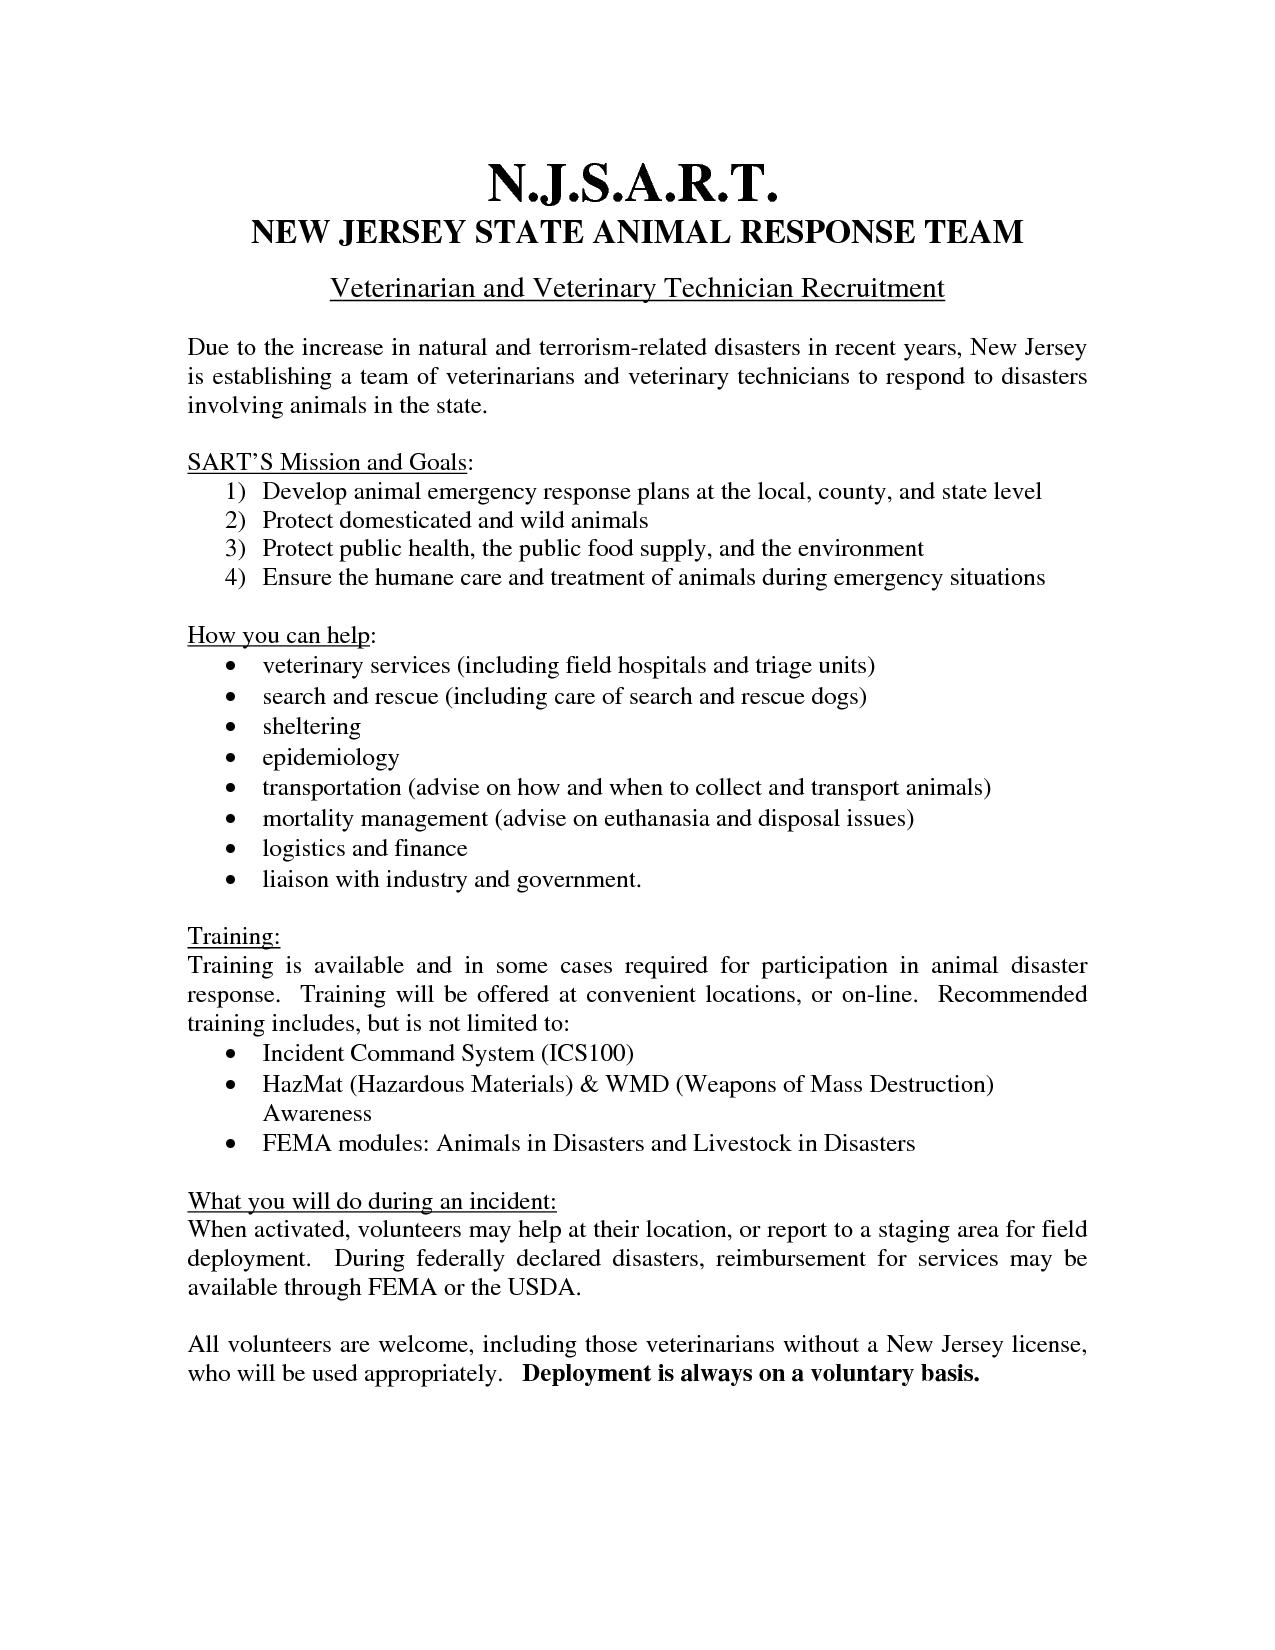 Veterinary Tech Resume Sample More Info Could Be Found At The Image Url Dogs